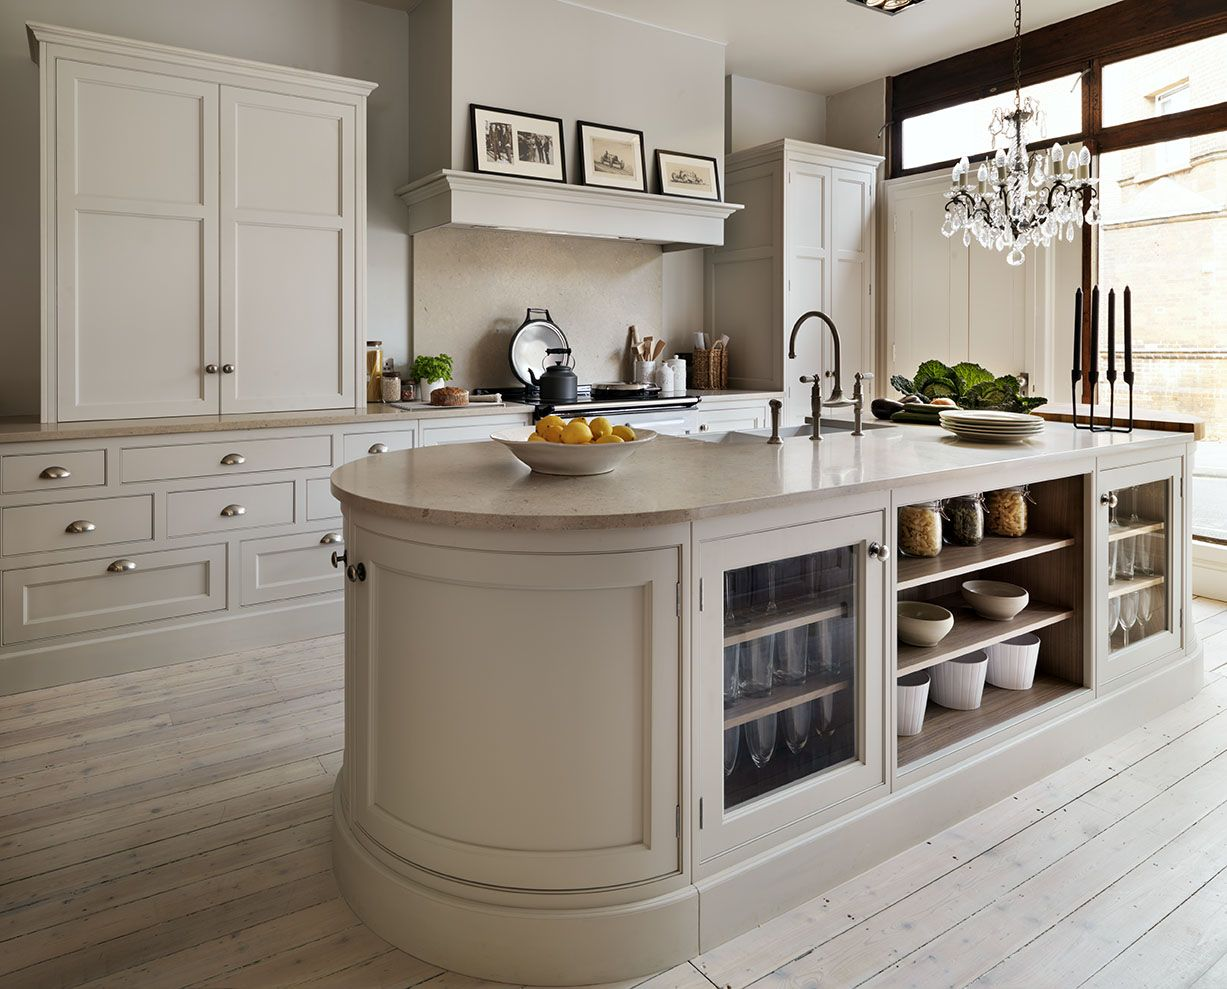 Cream Kitchen Love The Curved Island Remodel Kitchen